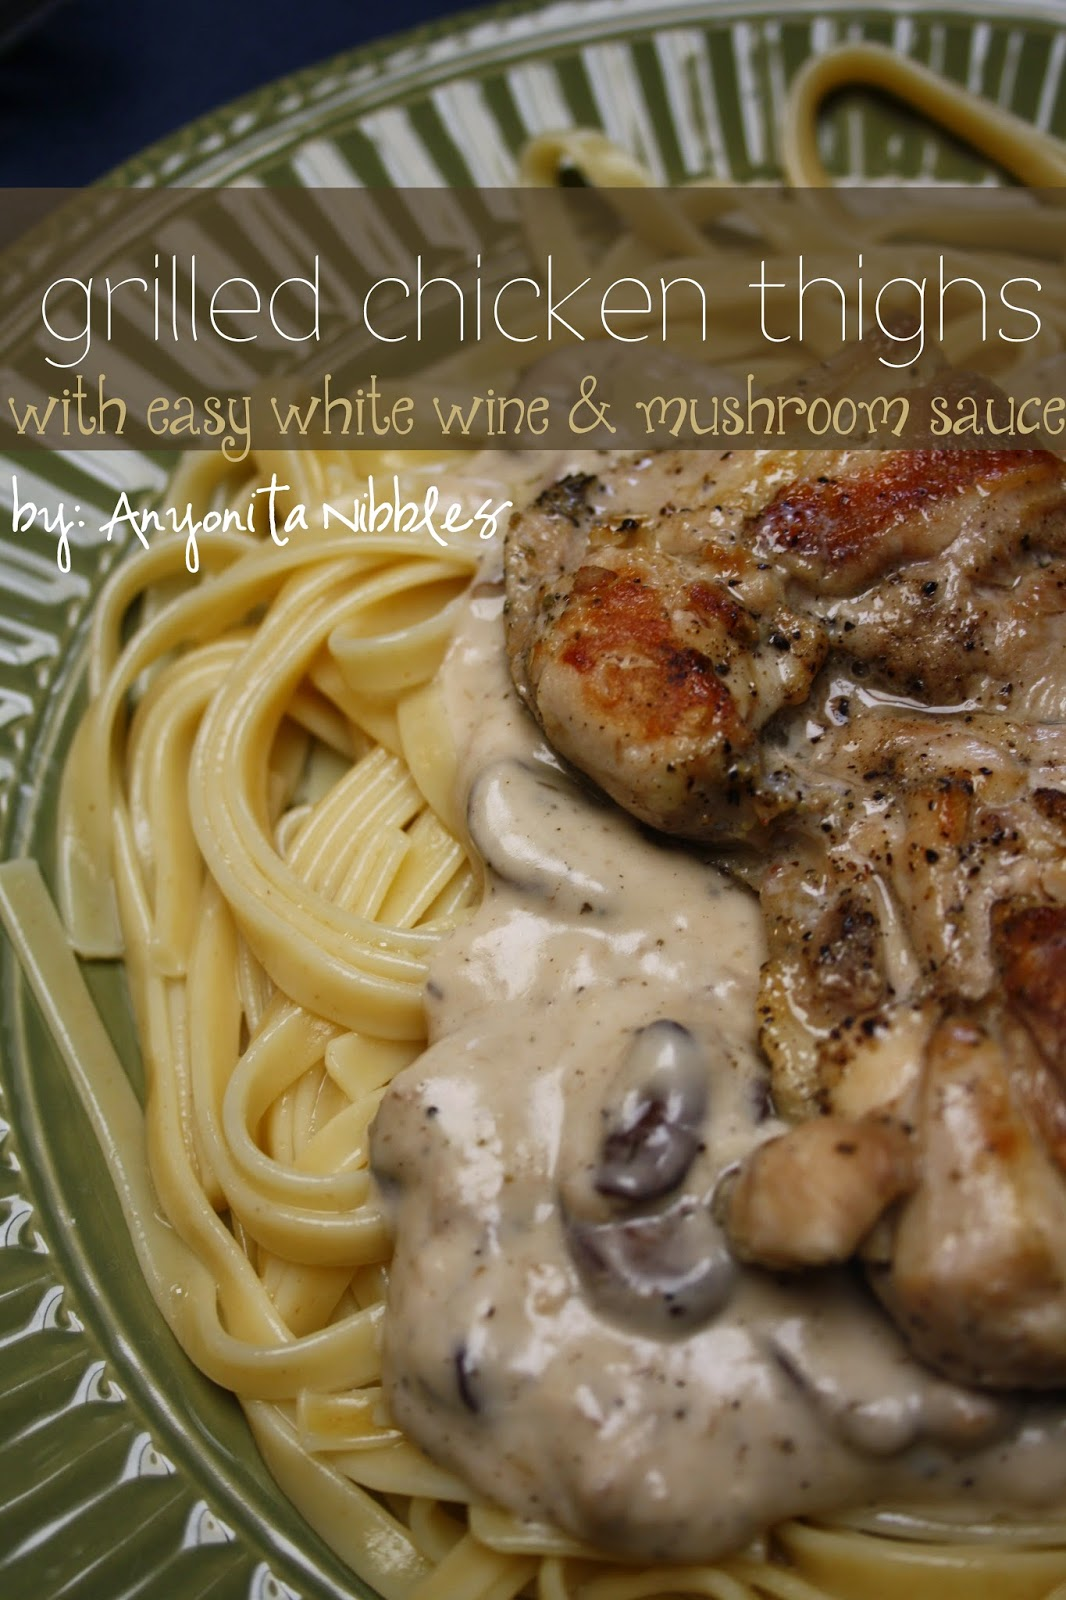 Grilled Chicken Thighs with Easy White Wine & Mushroom Sauce Recipe from www.anyonita-nibbles.com Restaurant-quality sauce in less than 10 minutes